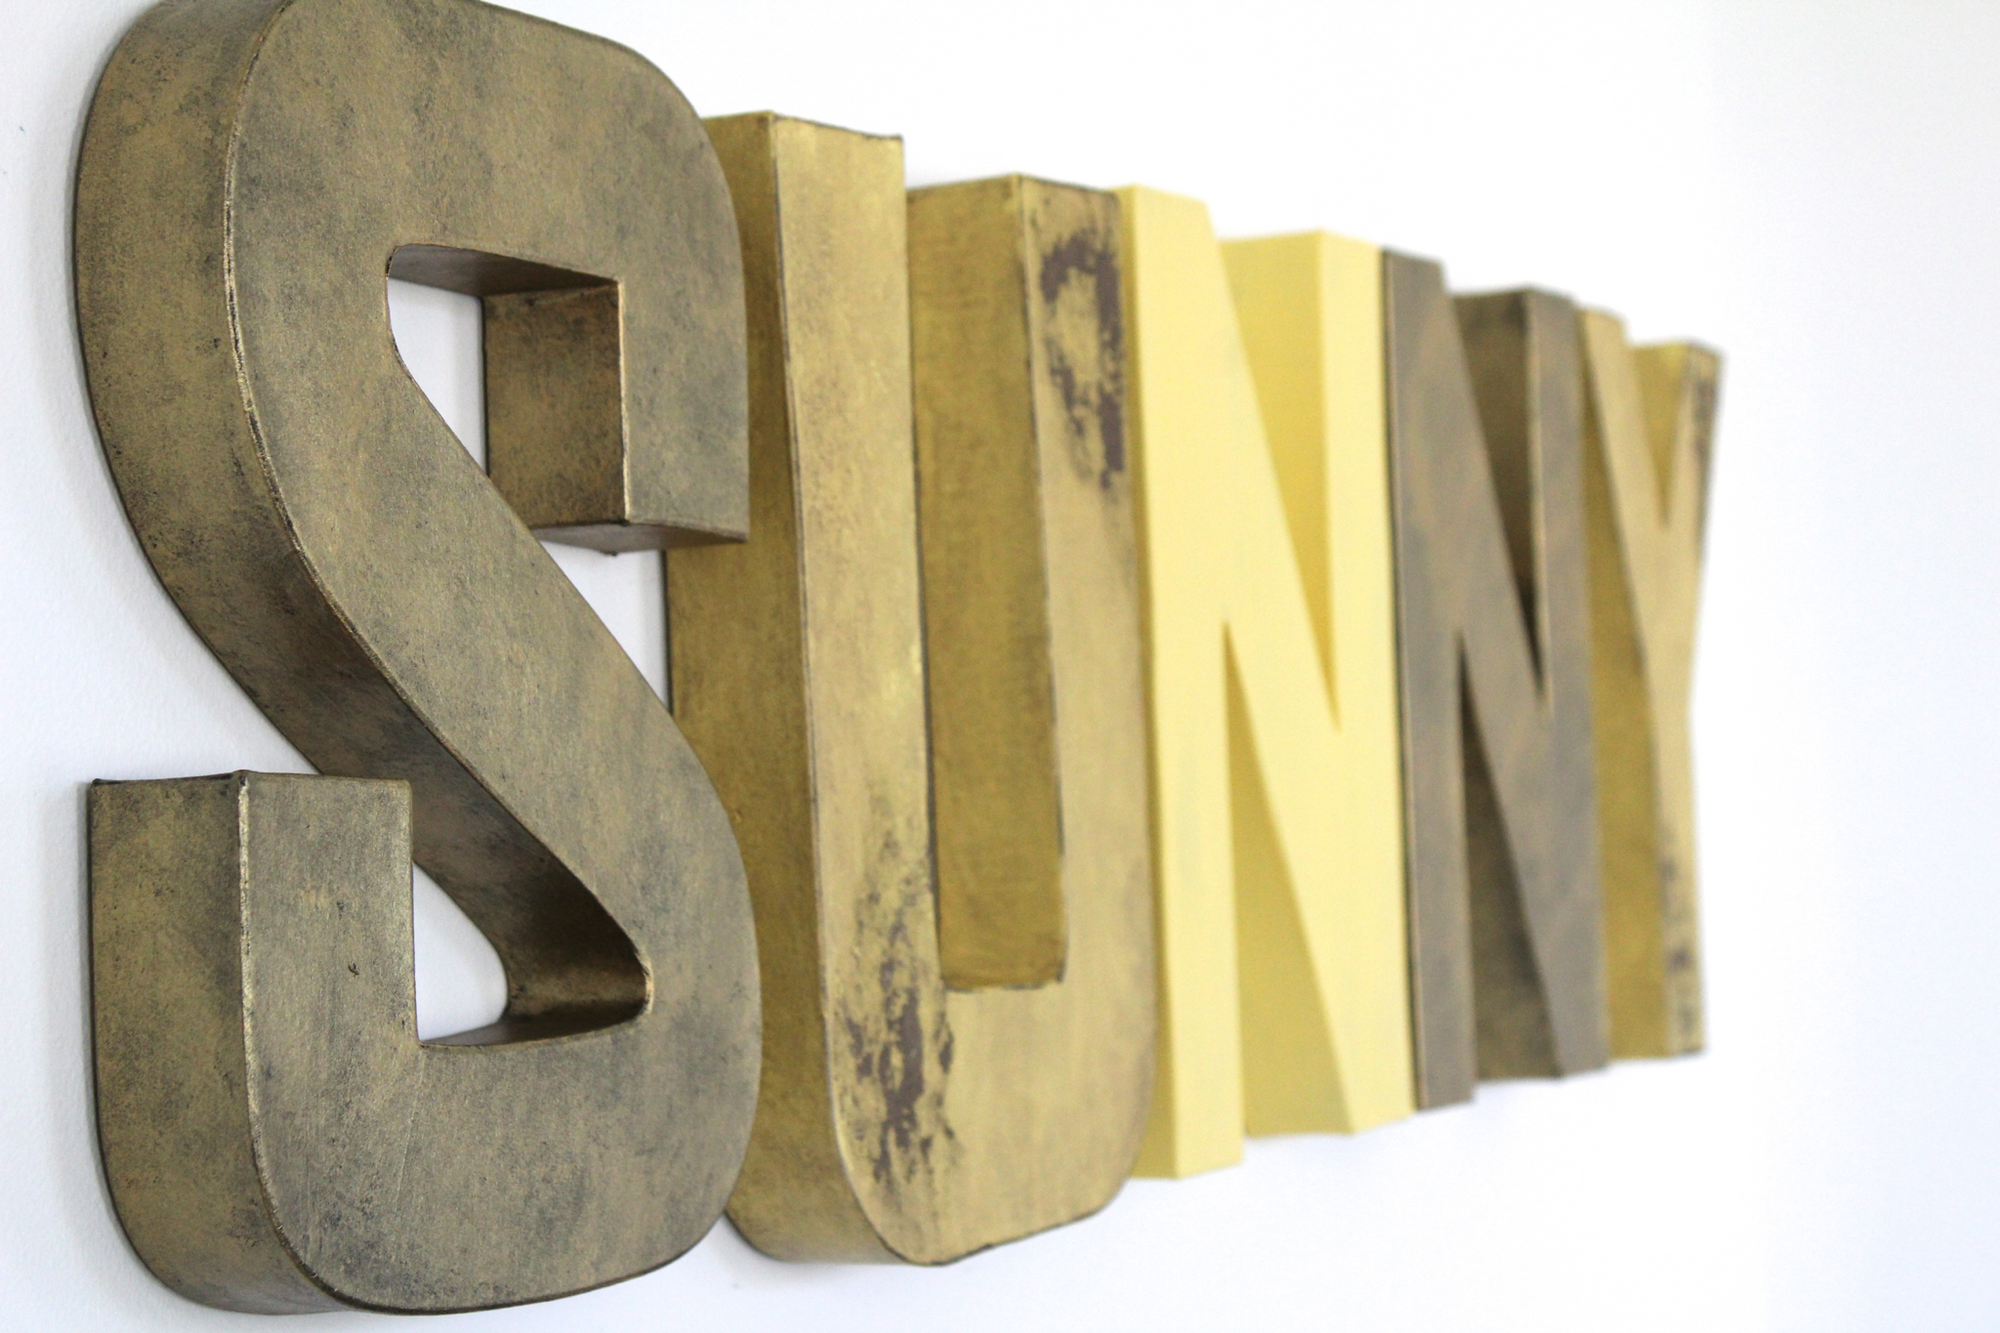 Yellow Nursery Decor Wall Letters | Faux Wood and Metal Letters ...